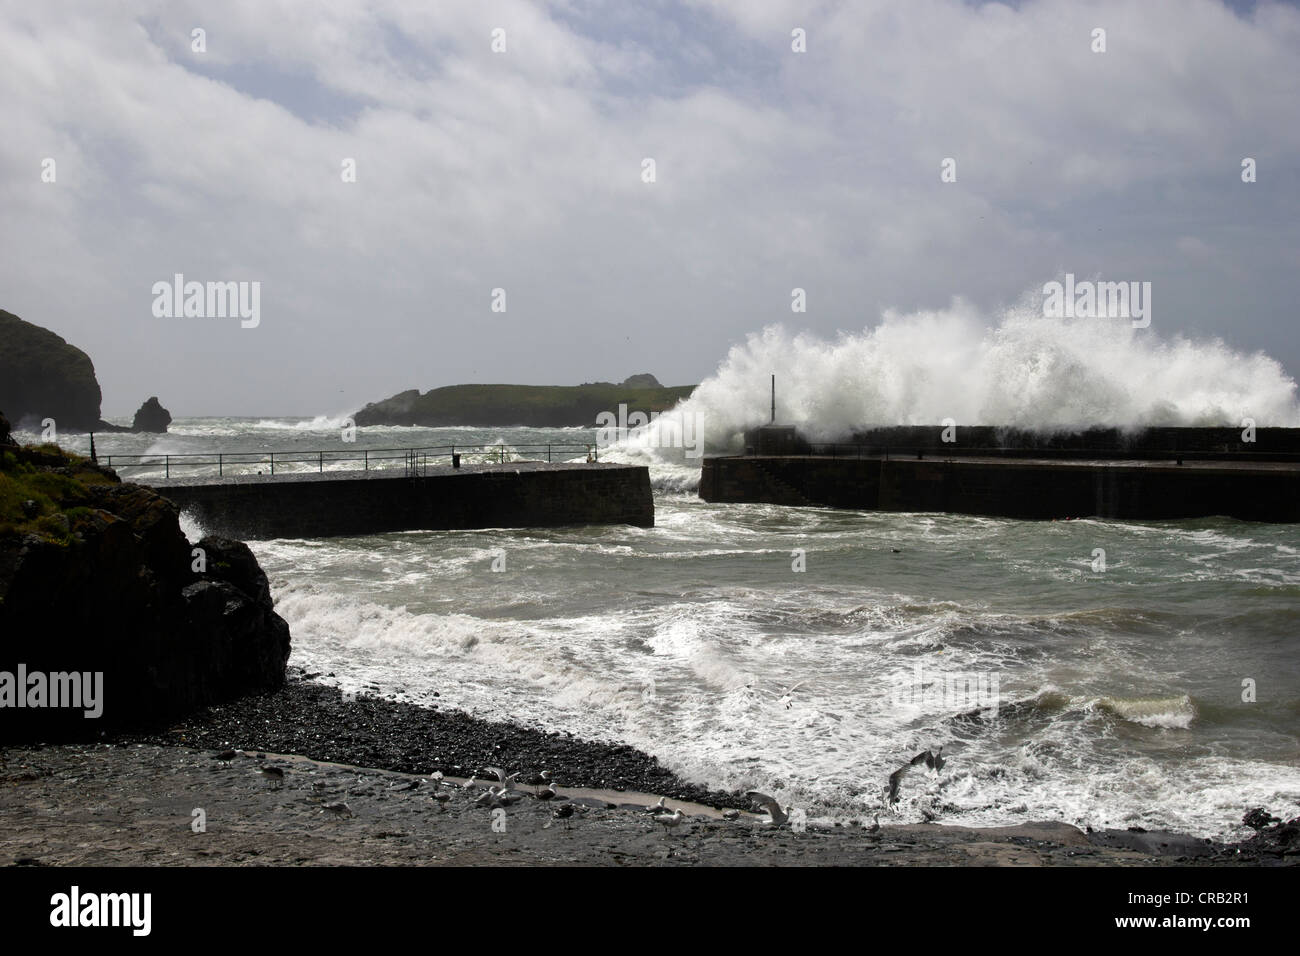 Crashing waves at Mullion Cove, The Lizard, Cornwall cause by a south westerly gale force wind. - Stock Image